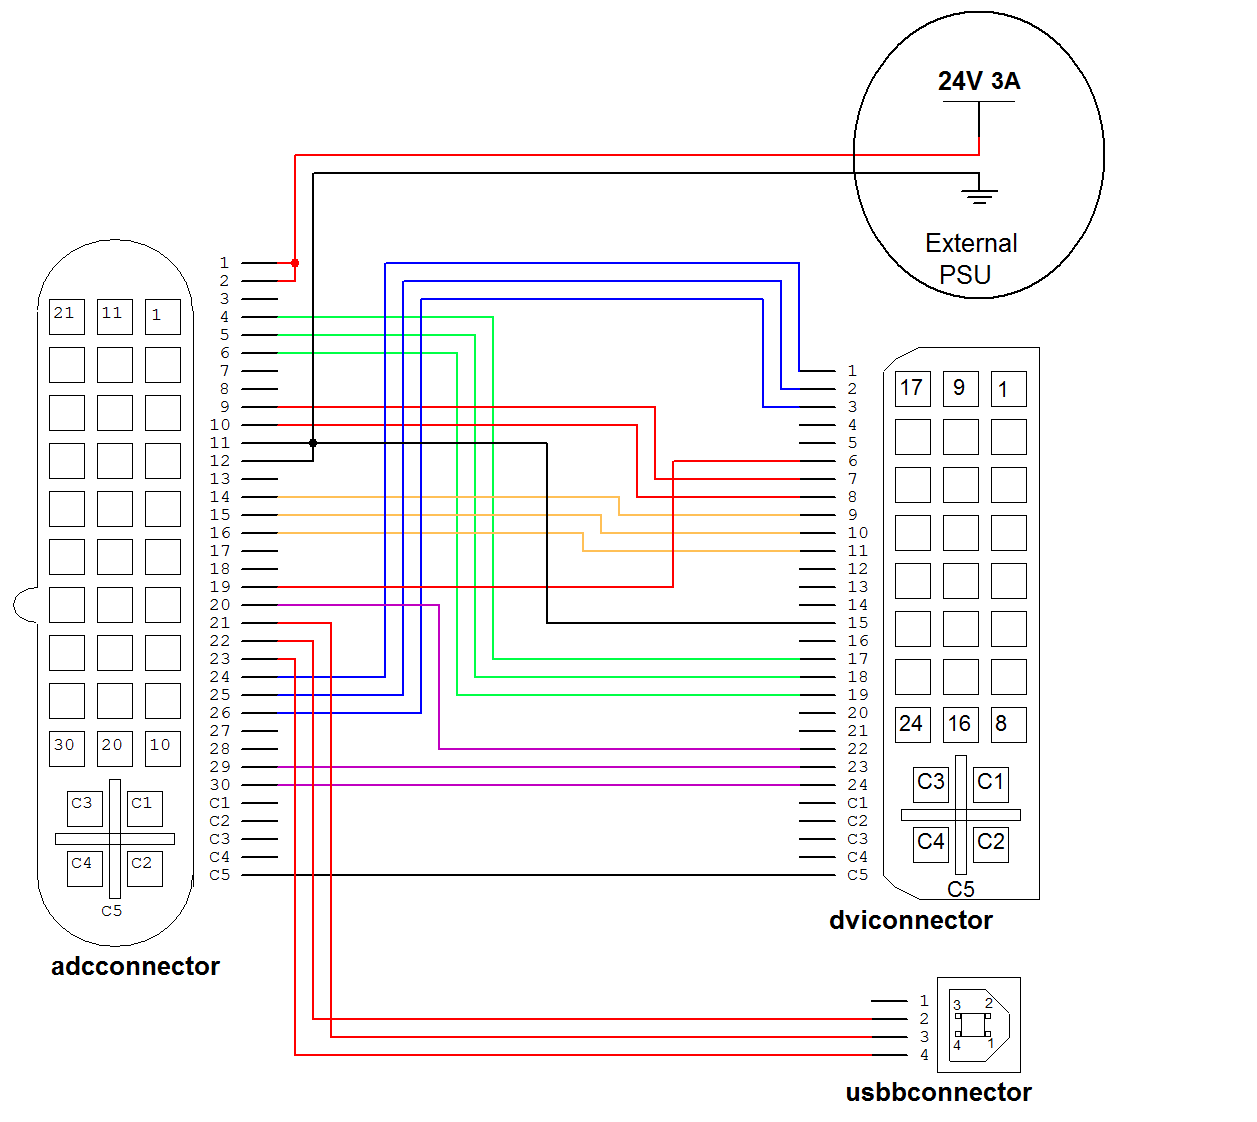 hdmi to vga wiring diagram pinout chevy starter dvi and schematic